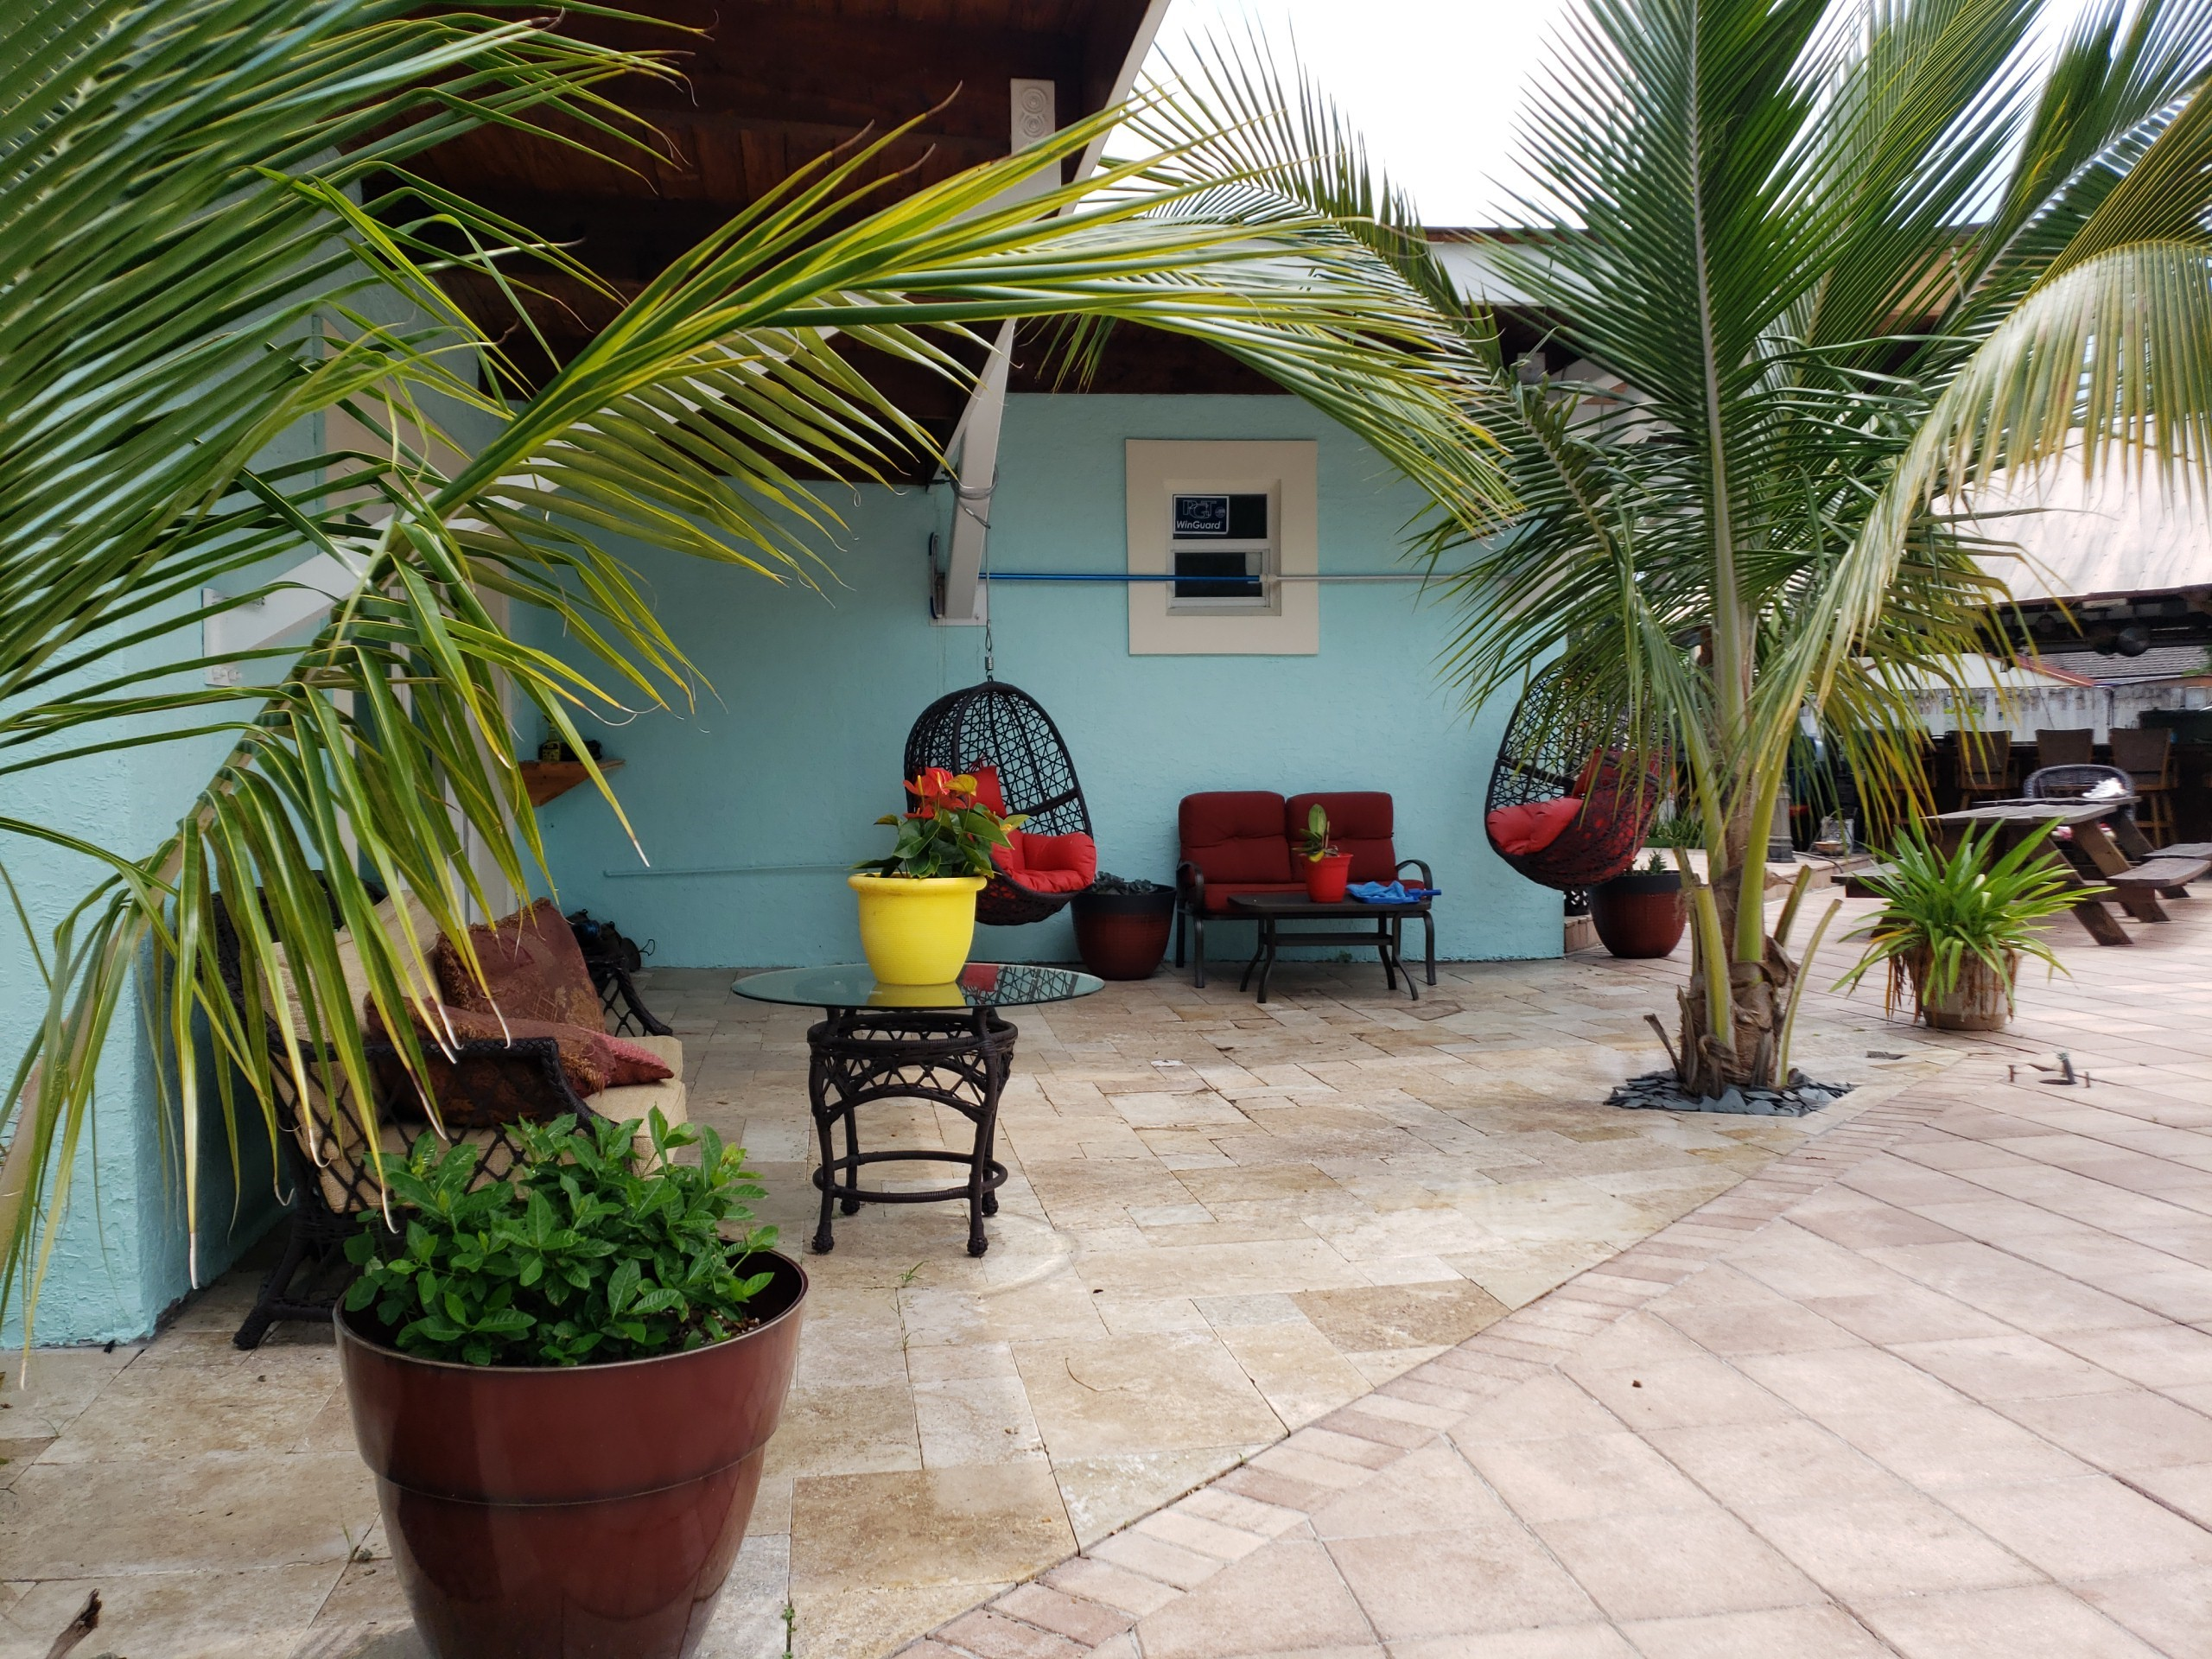 Lanai Screen Installation Cost In The